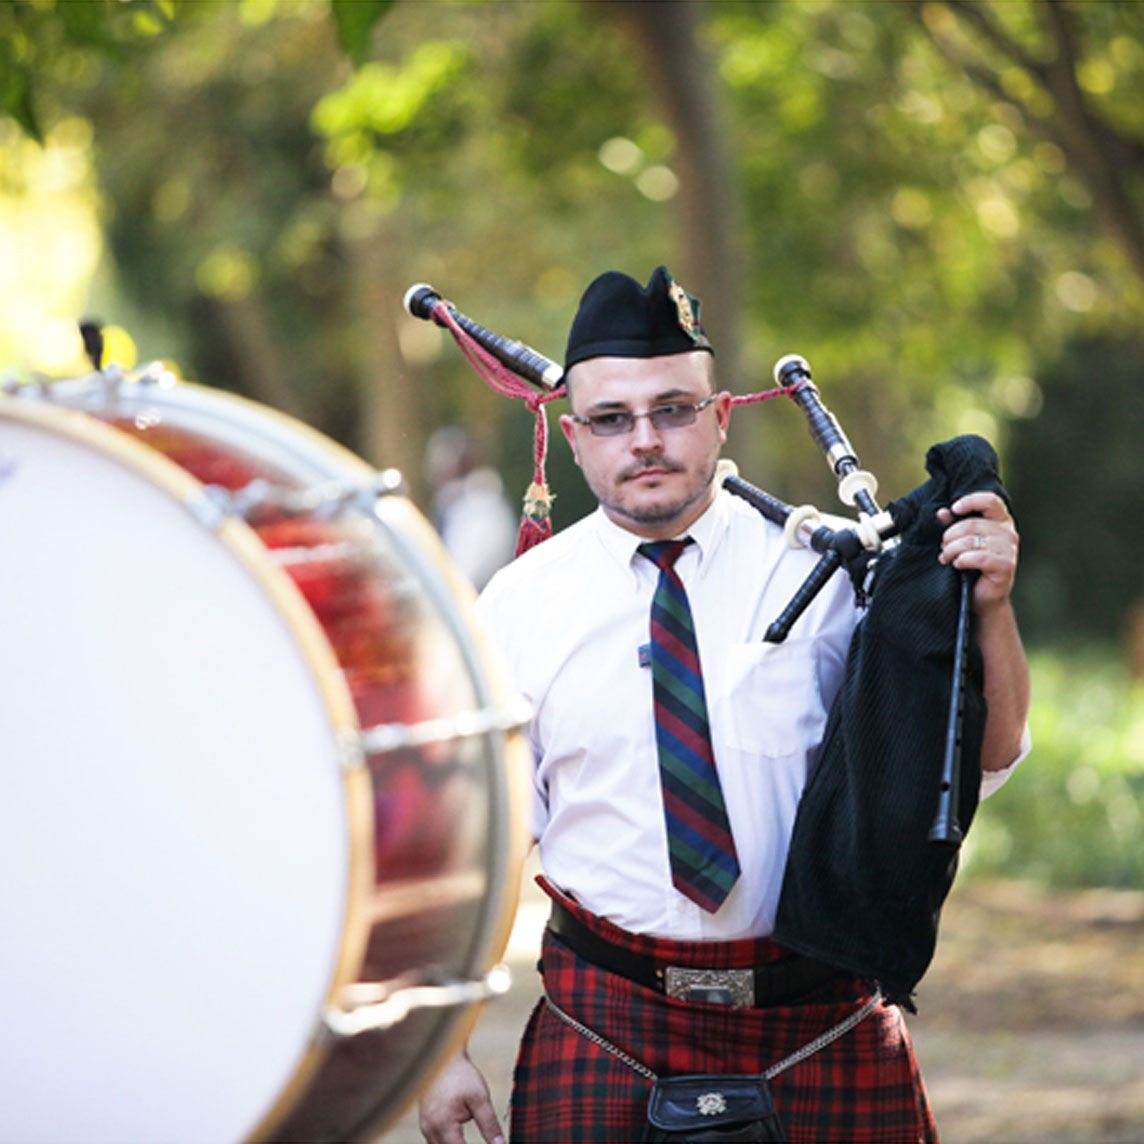 Bagpipe Players for Funerals -drummers